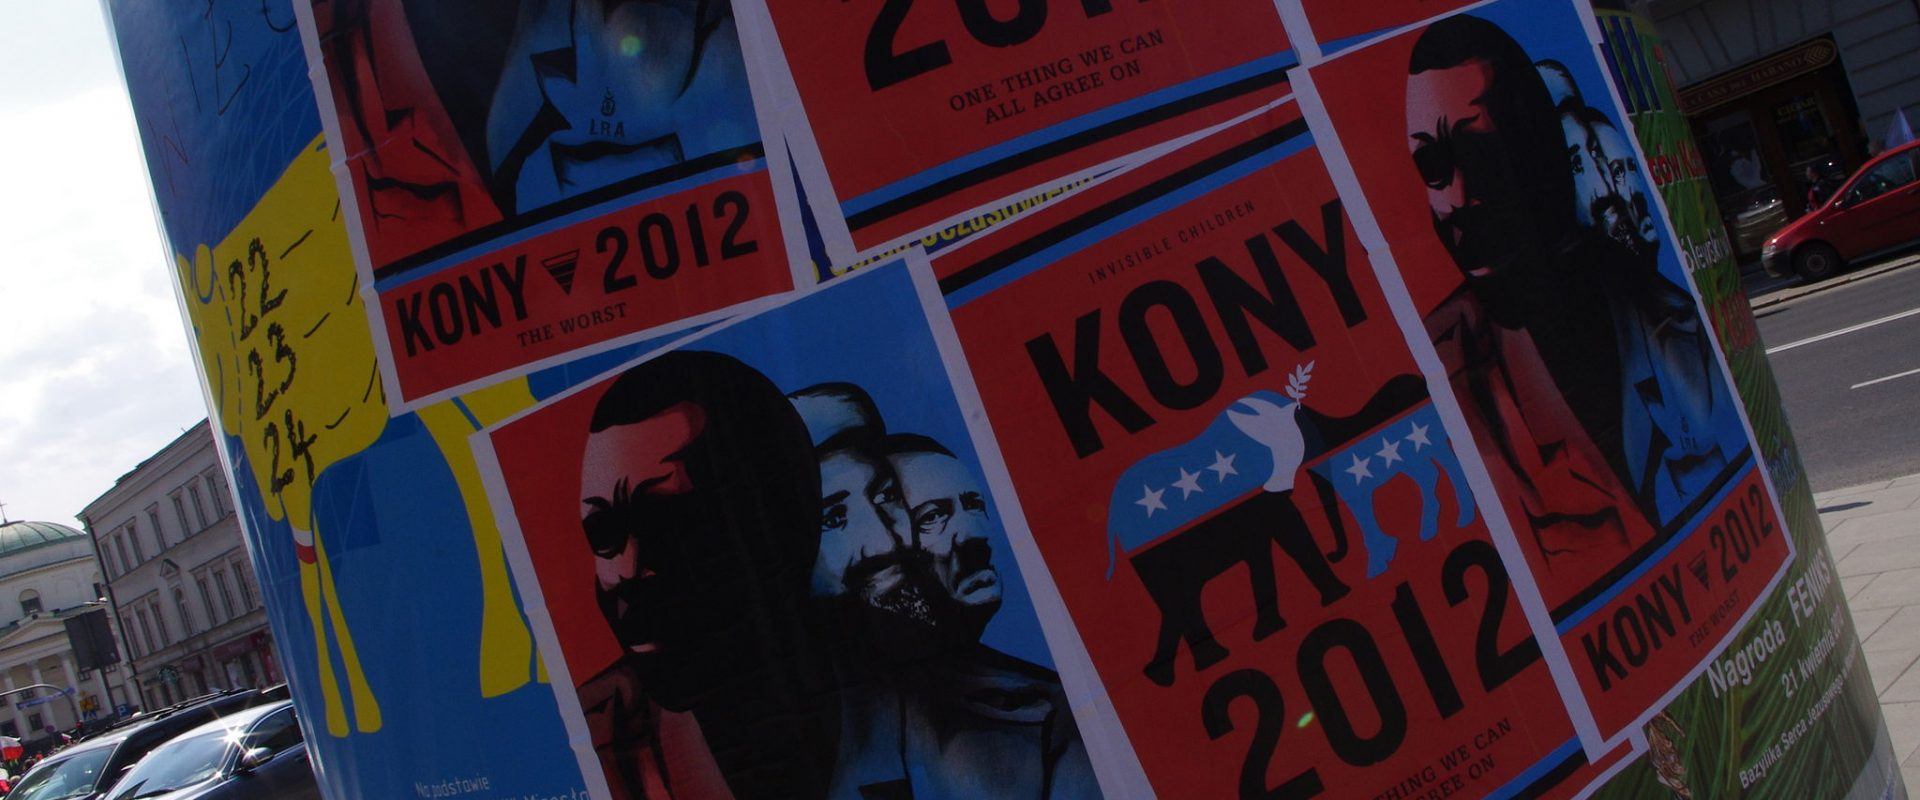 Permalink to: The Quest for Justice: Joseph Kony and the Lord's Resistance Army